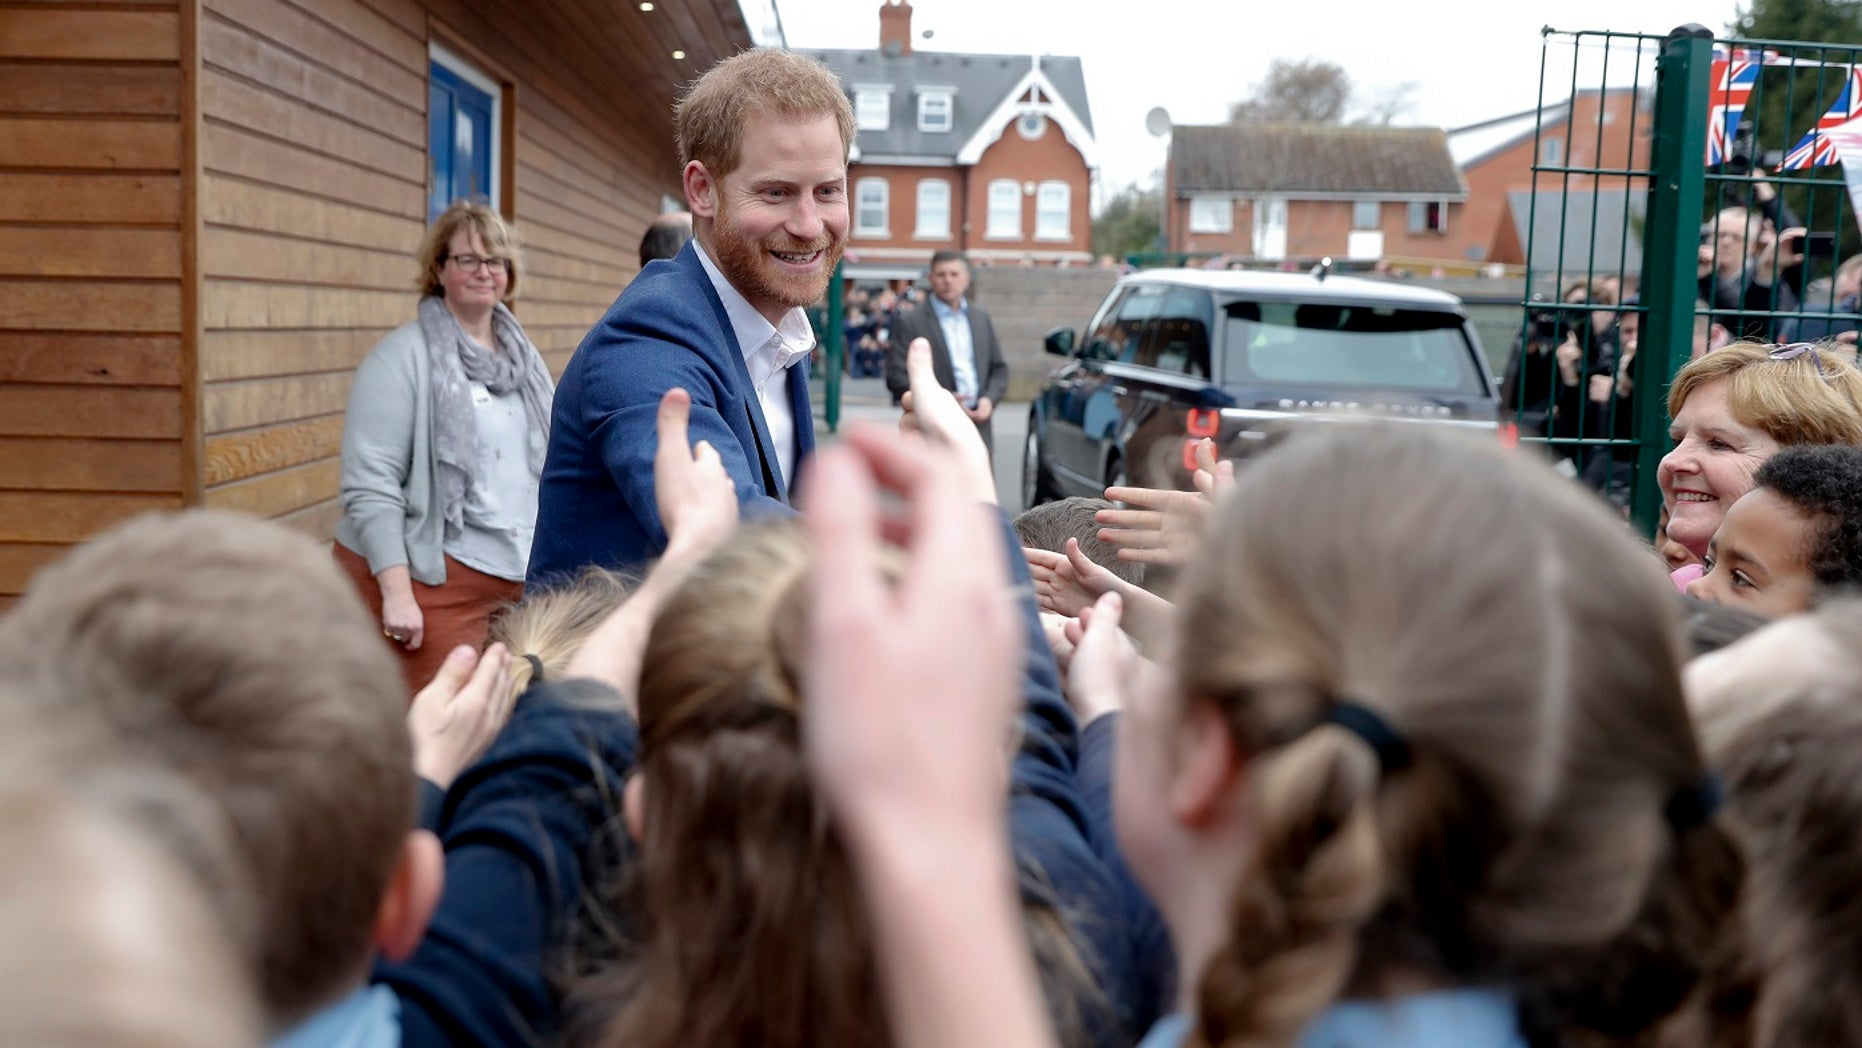 Duke of Sussex asked when the 'real' Prince Harry will arrive